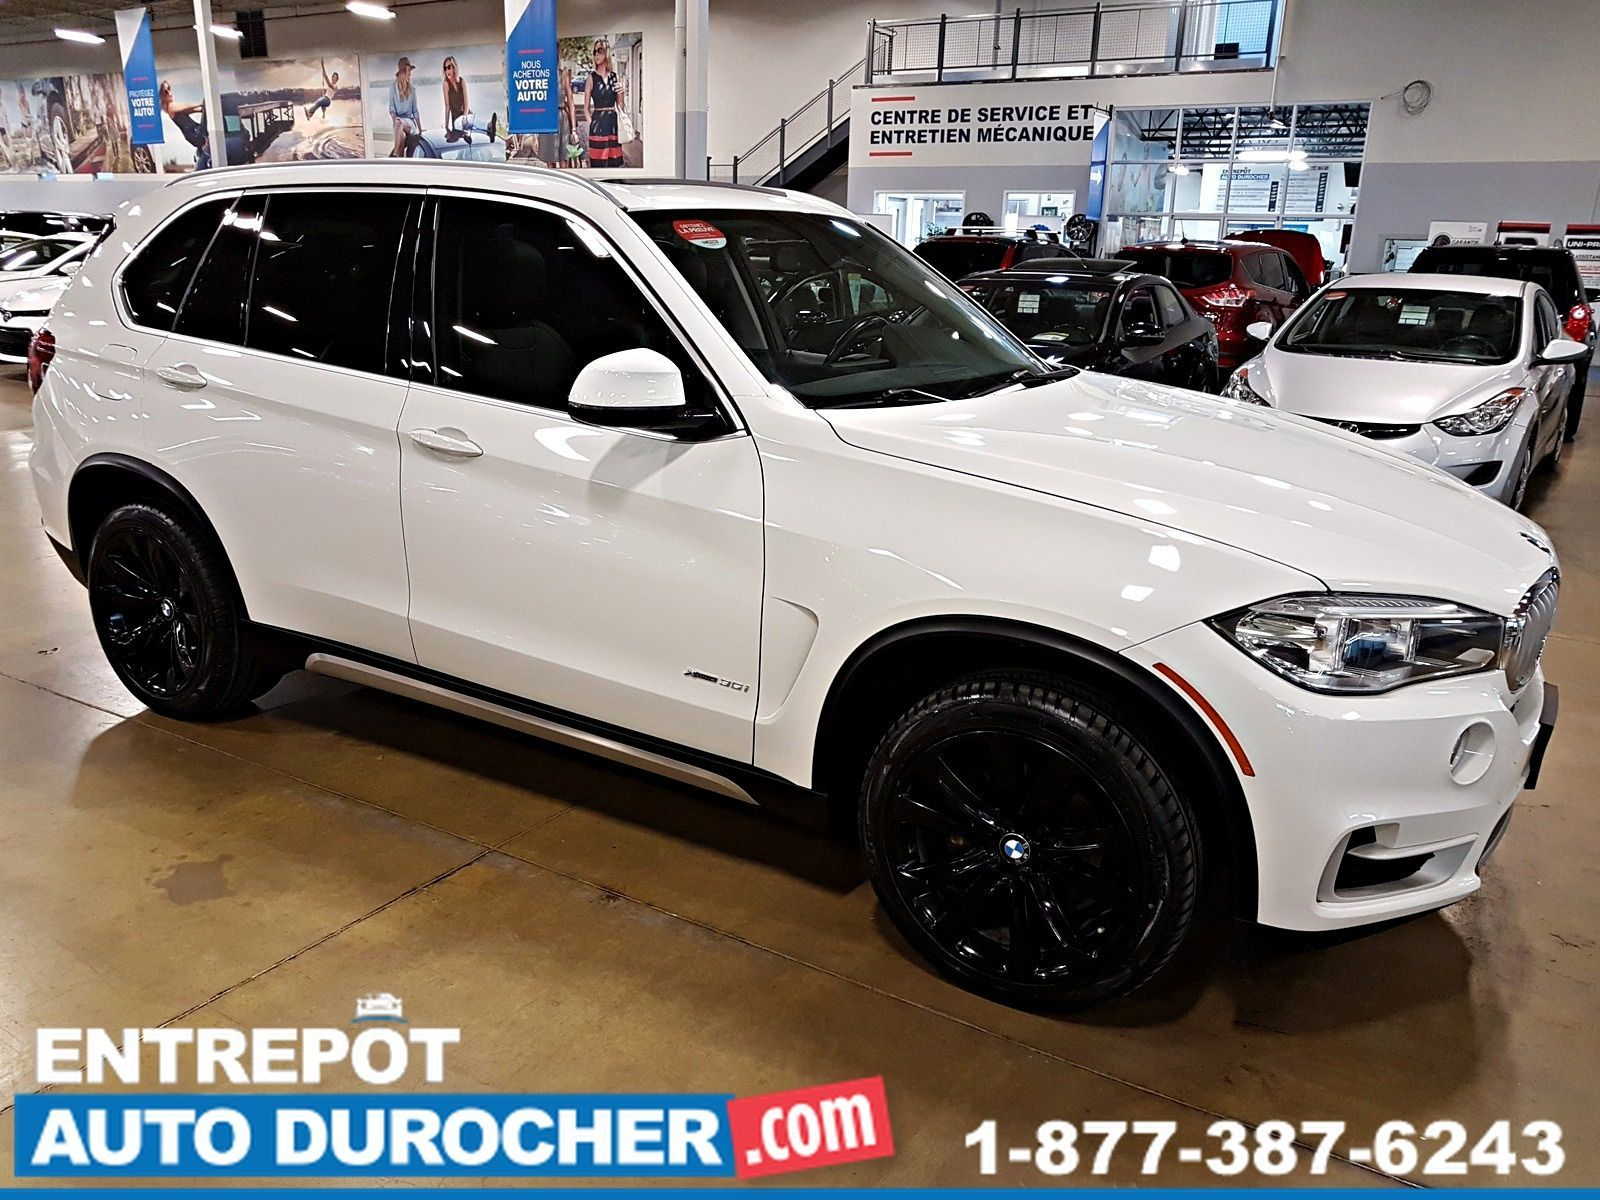 2015 BMW X5 XDrive35i Automatique - NAVIGATION - TOIT OUVRANT BACK UP CAMERA - BLUETOOTH - HEATED SEATS - POWER SEATS - MAGS